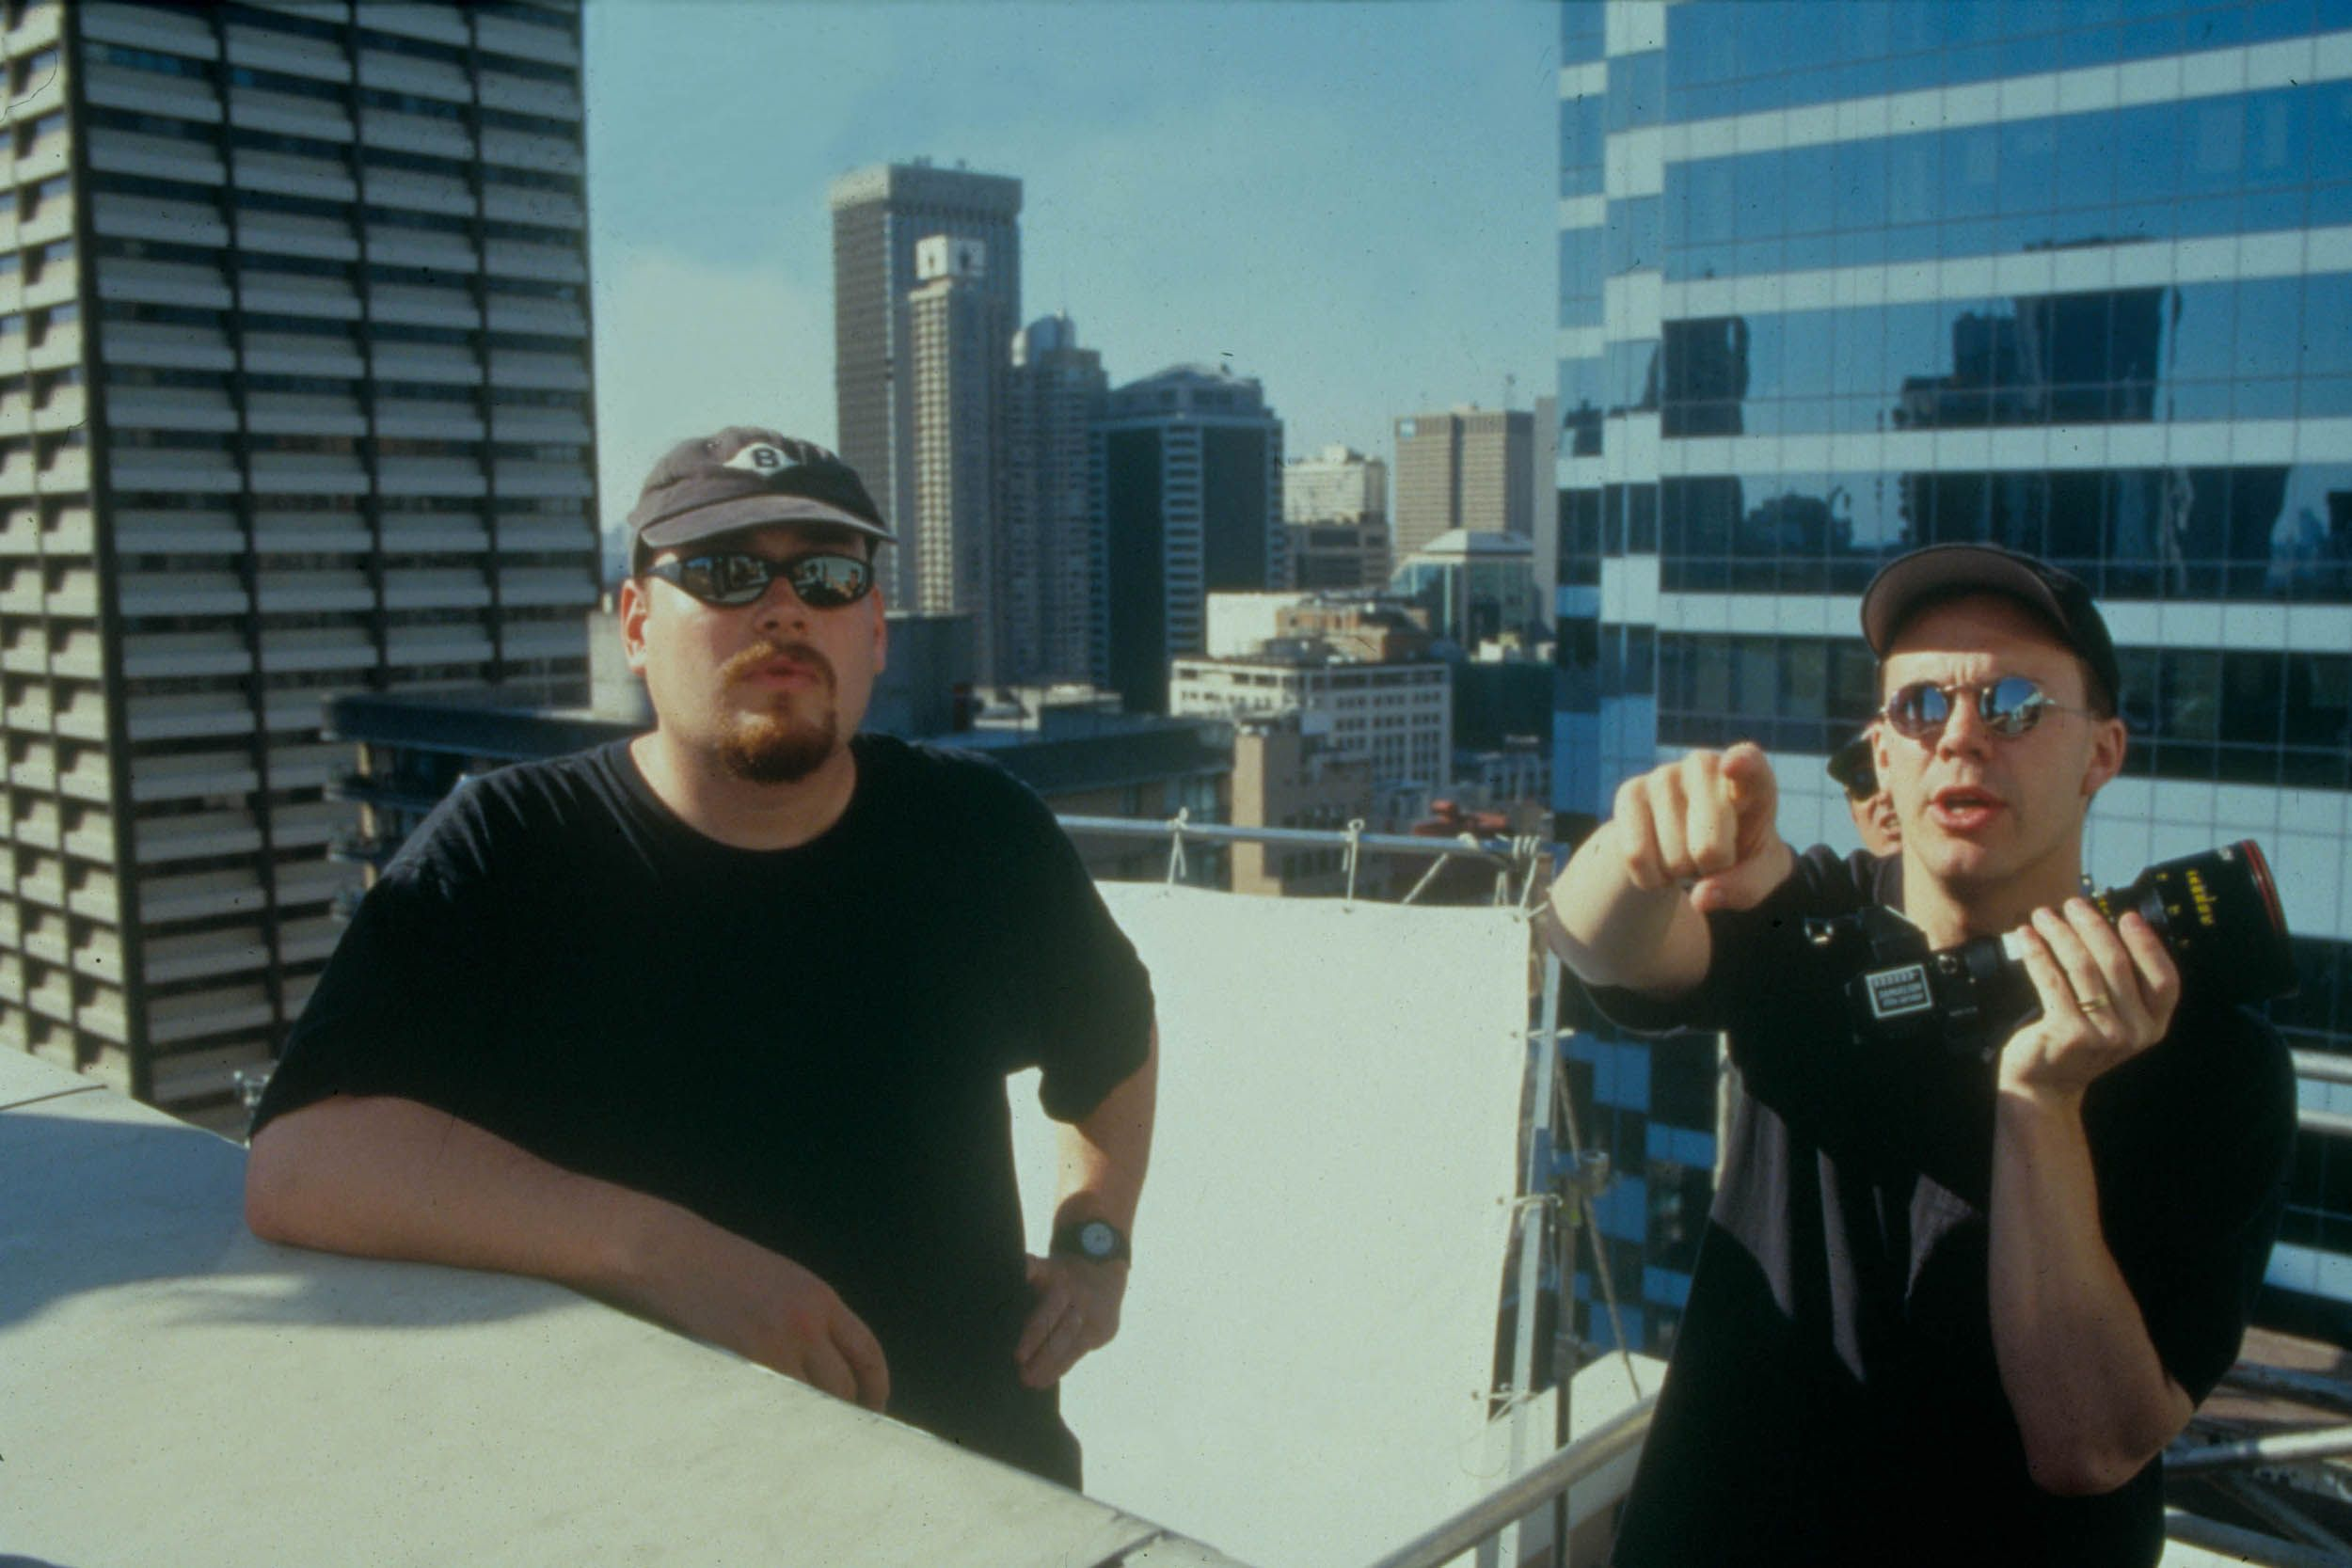 Directors Andy Wachowski and Larry Wachowski on the set of their 1999 film The Matrix.